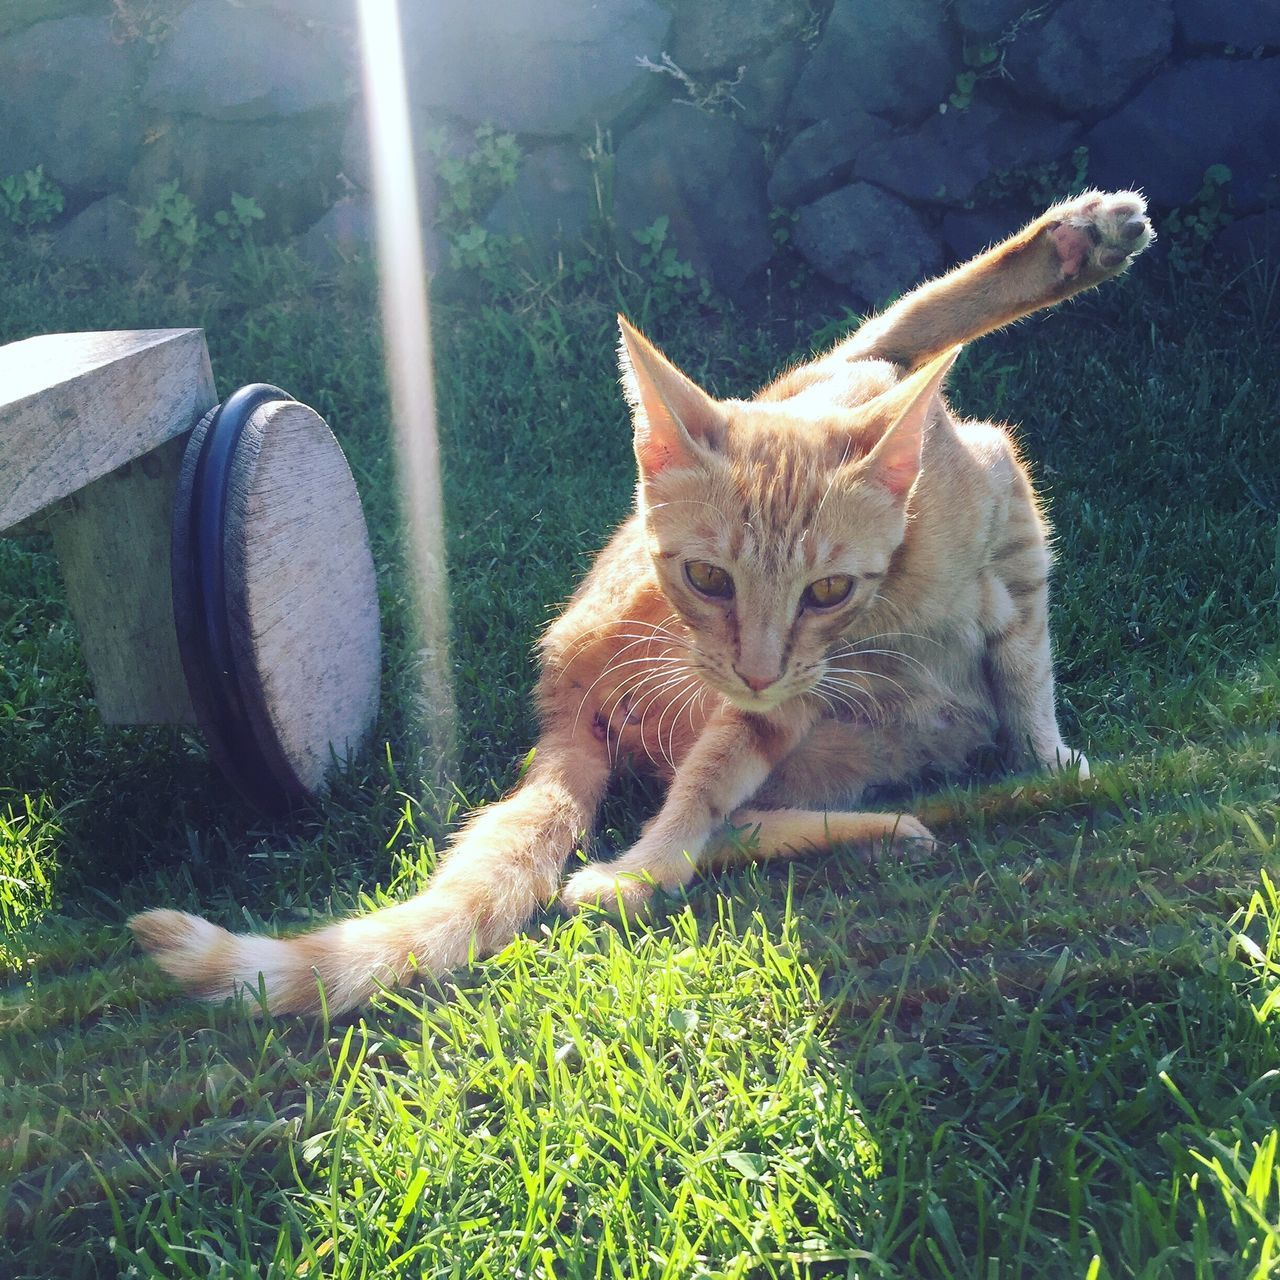 Sommergefühle Domestic Cat Pets Domestic Animals Feline Grass Mammal Animal Themes Day No People One Animal Sunlight Outdoors Portrait